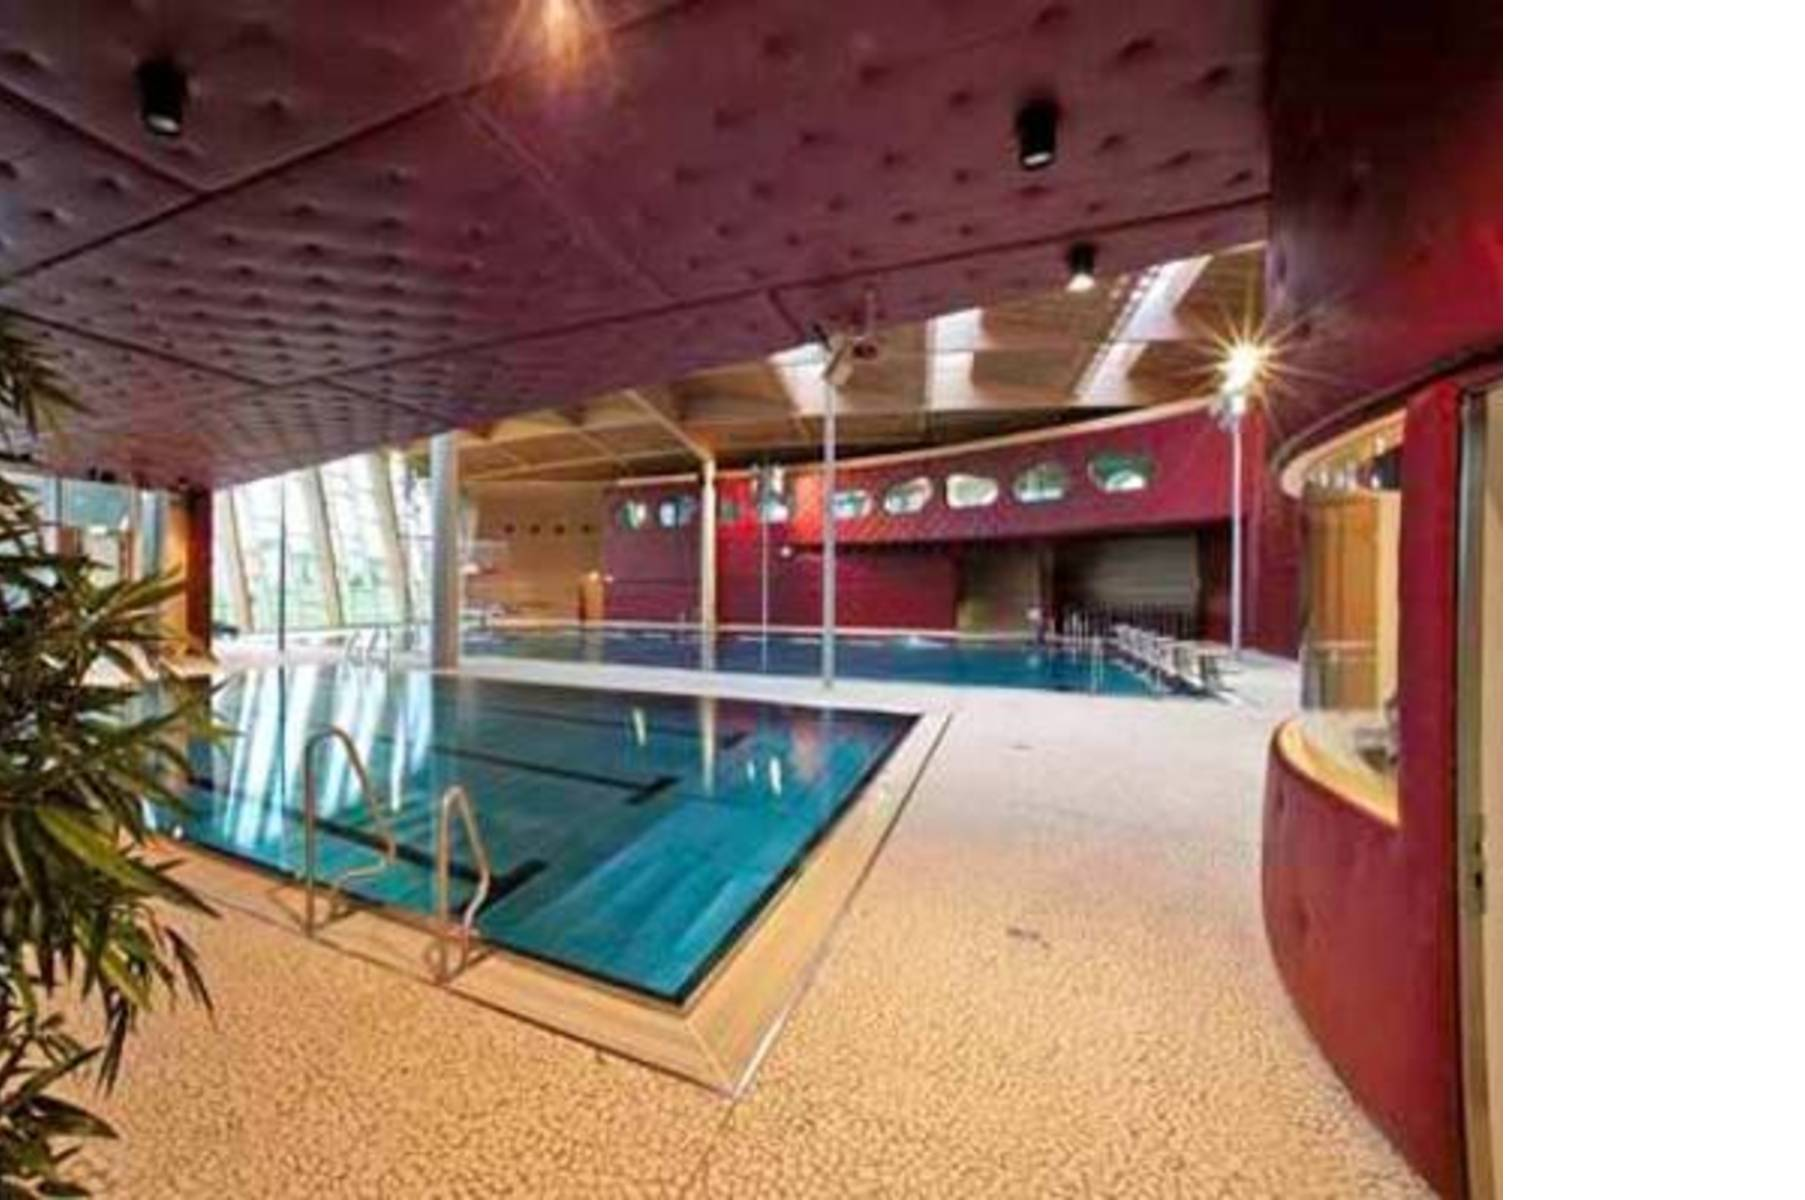 Les Thermes In Strassen Luxembourg Floornature